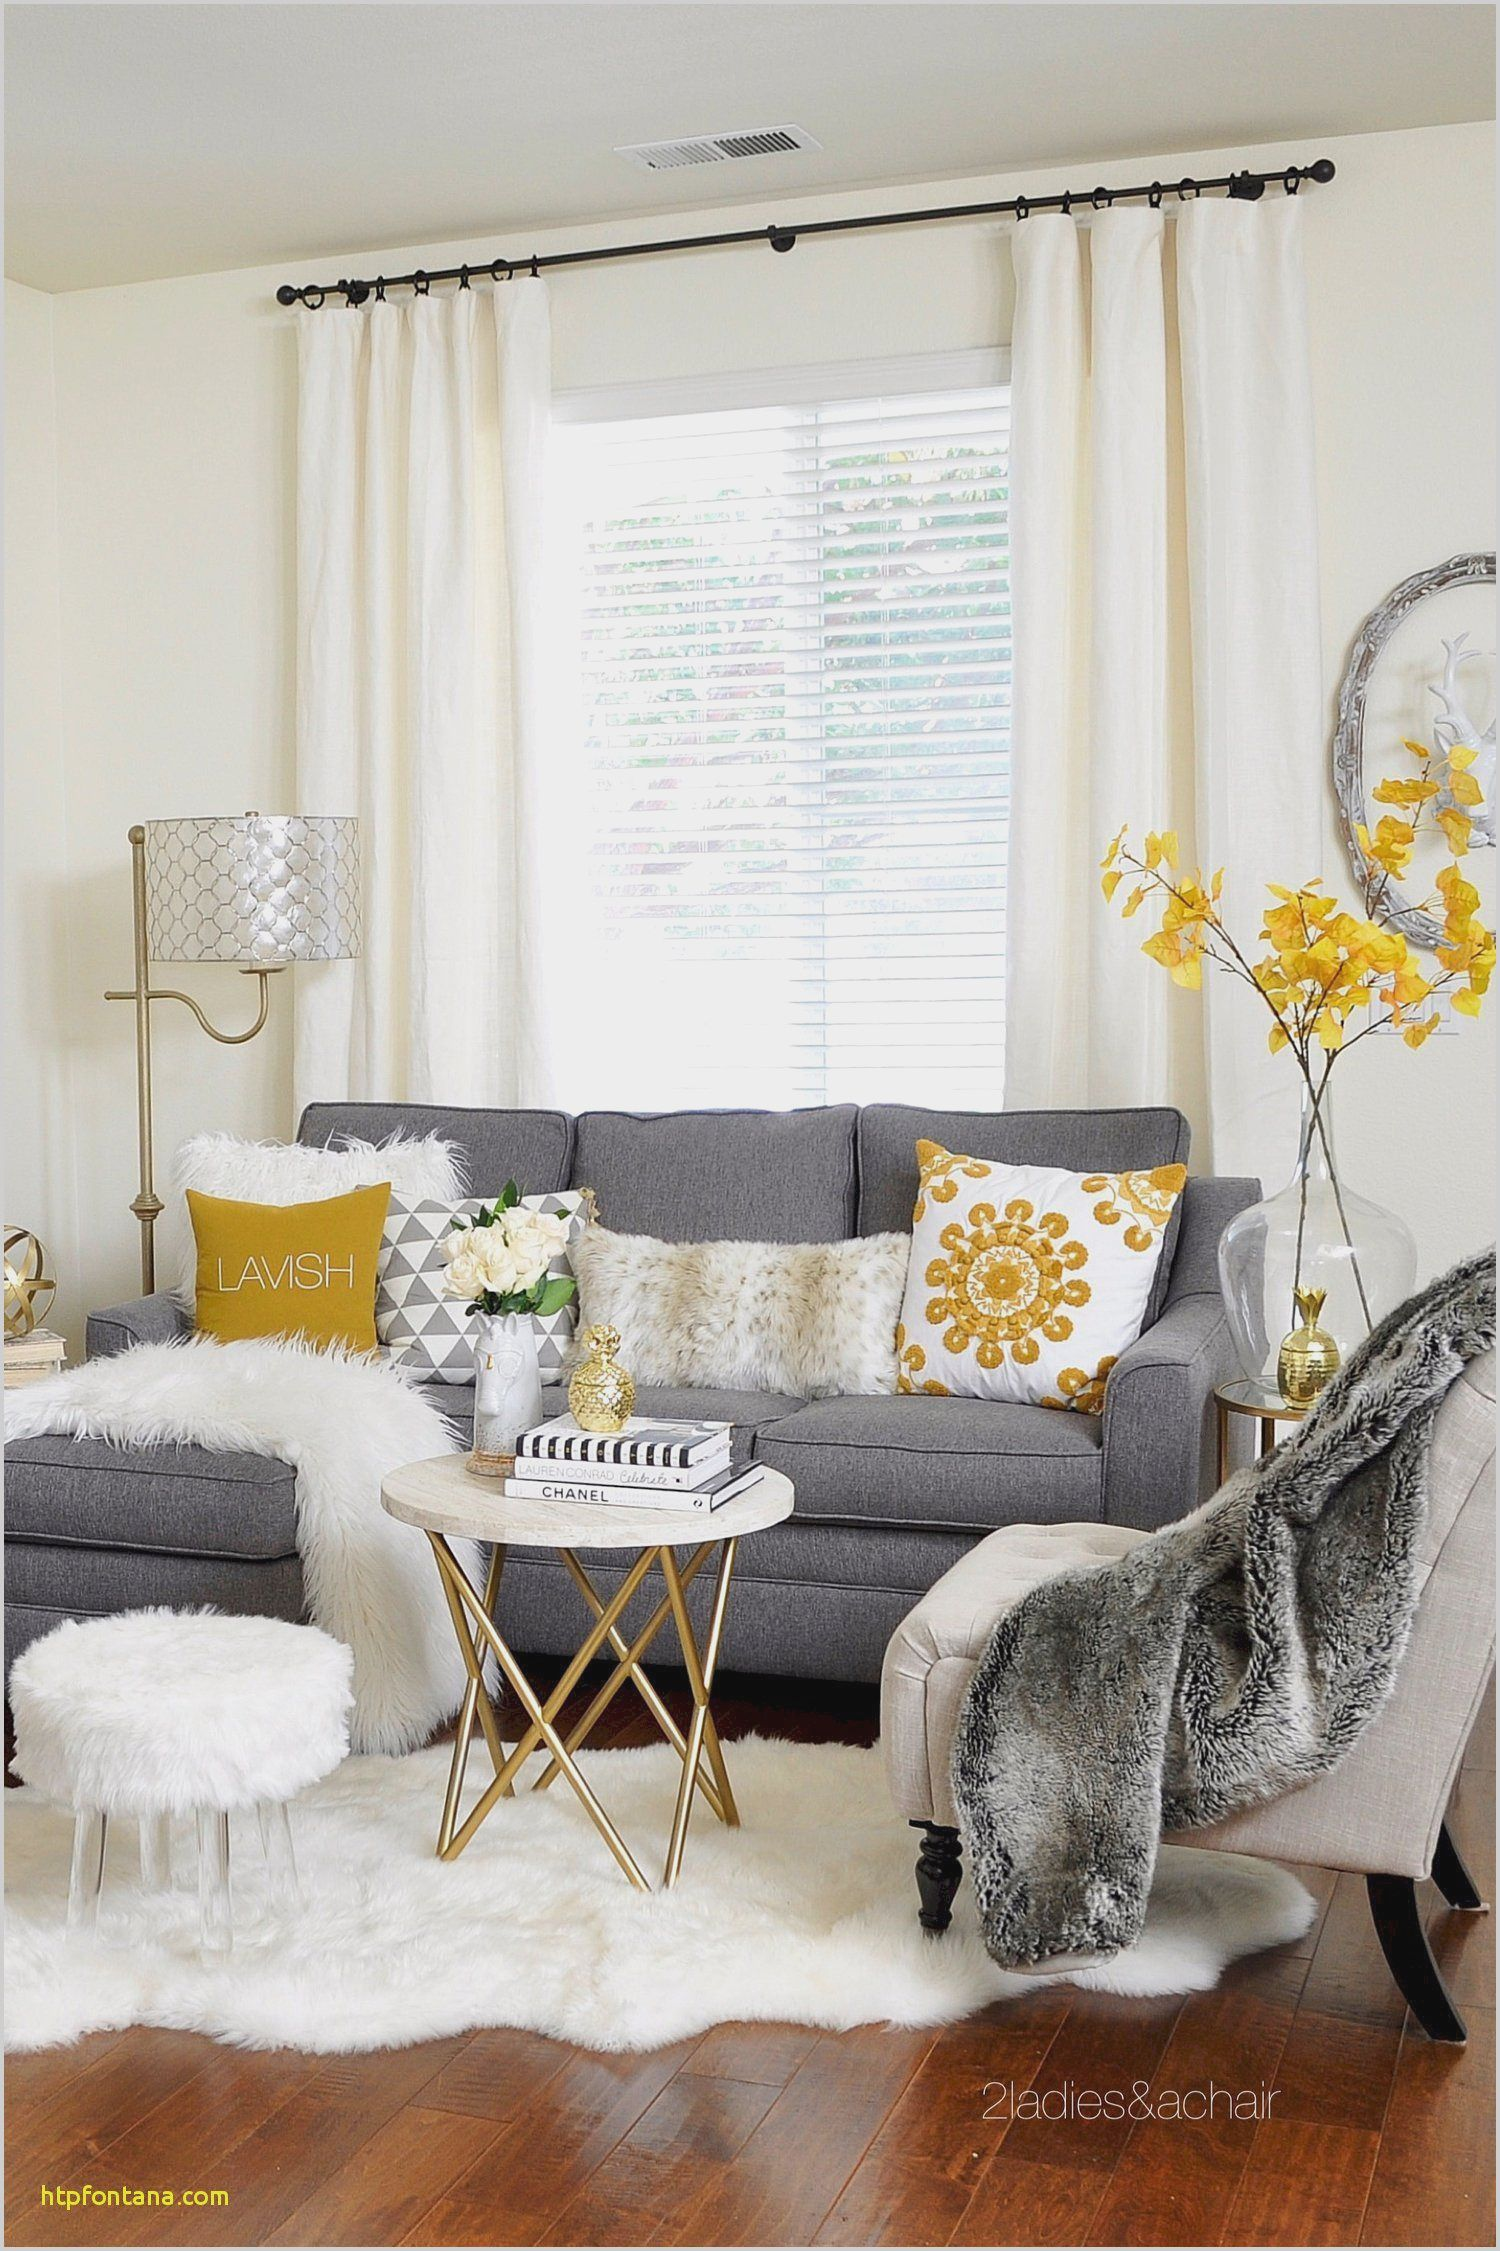 Grey And Mustard Living Room Curtains In 2020 Small Living Room Decor Mustard Living Rooms Grey And Yellow Living Room #small #living #room #curtain #ideas